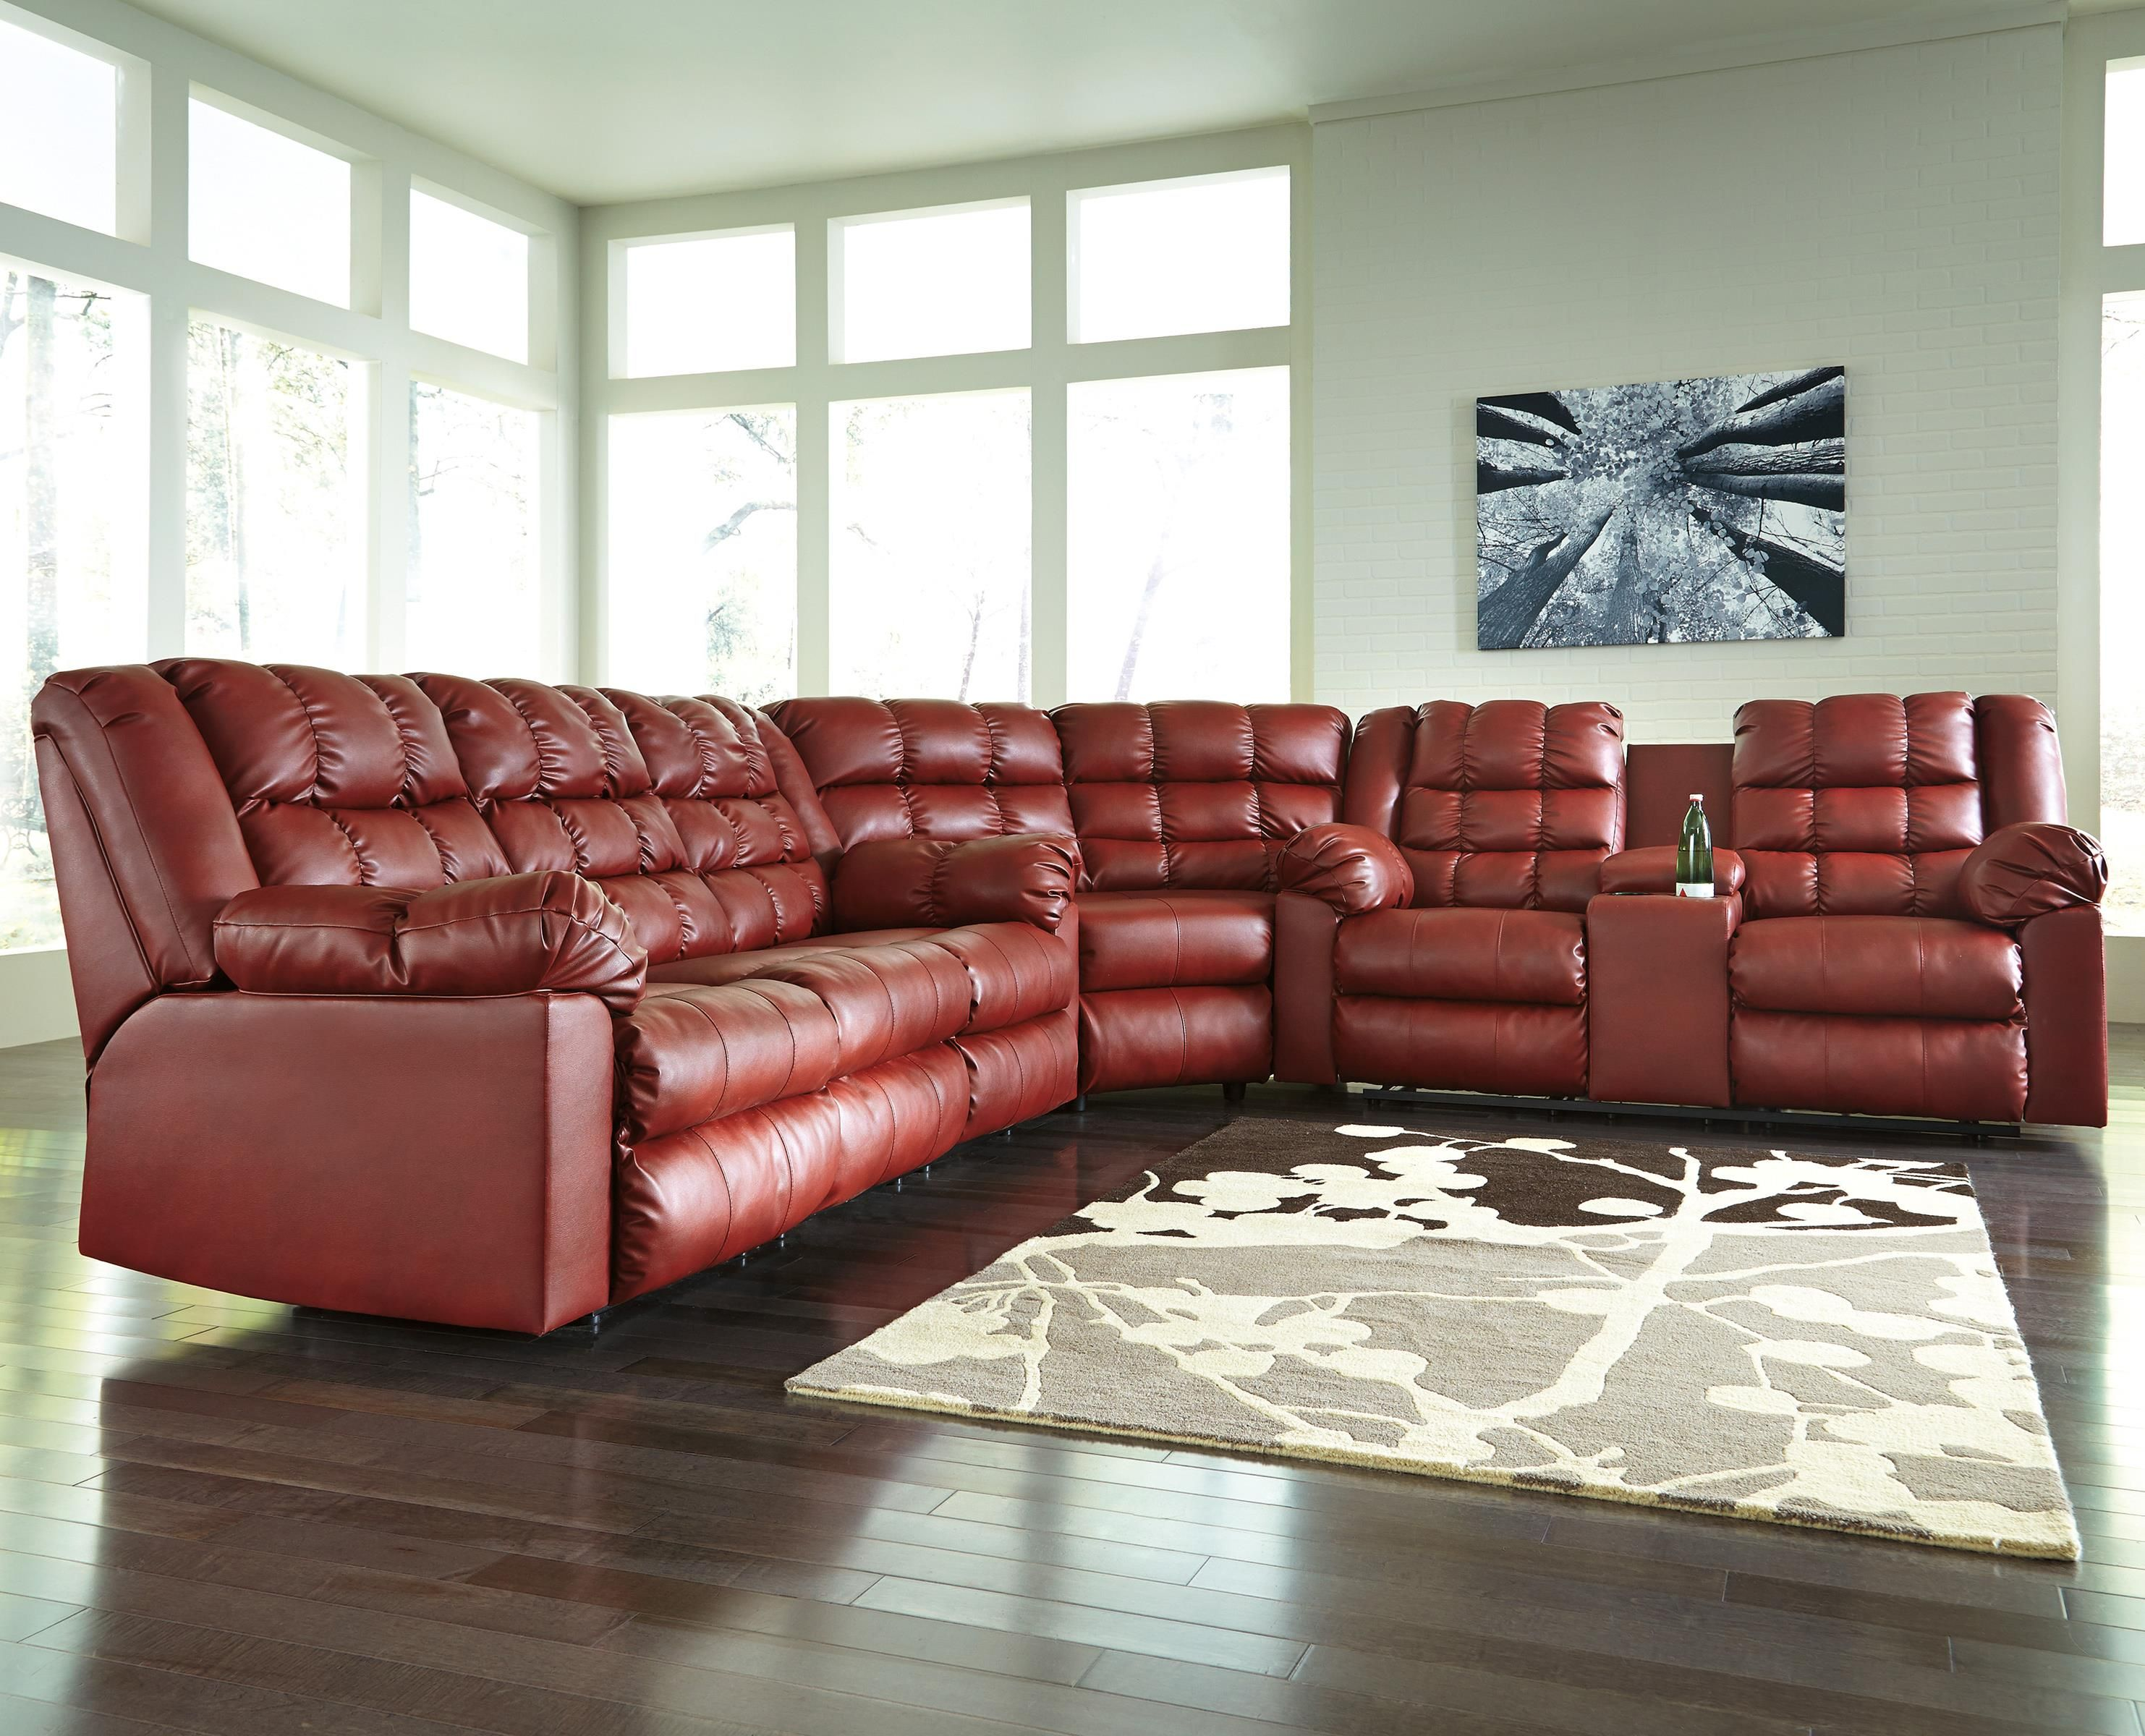 has details edge style sold and tufts add ample button average pin pieces beautiful sectional the piece back not your this chesterfield bottom around cushions separately seating